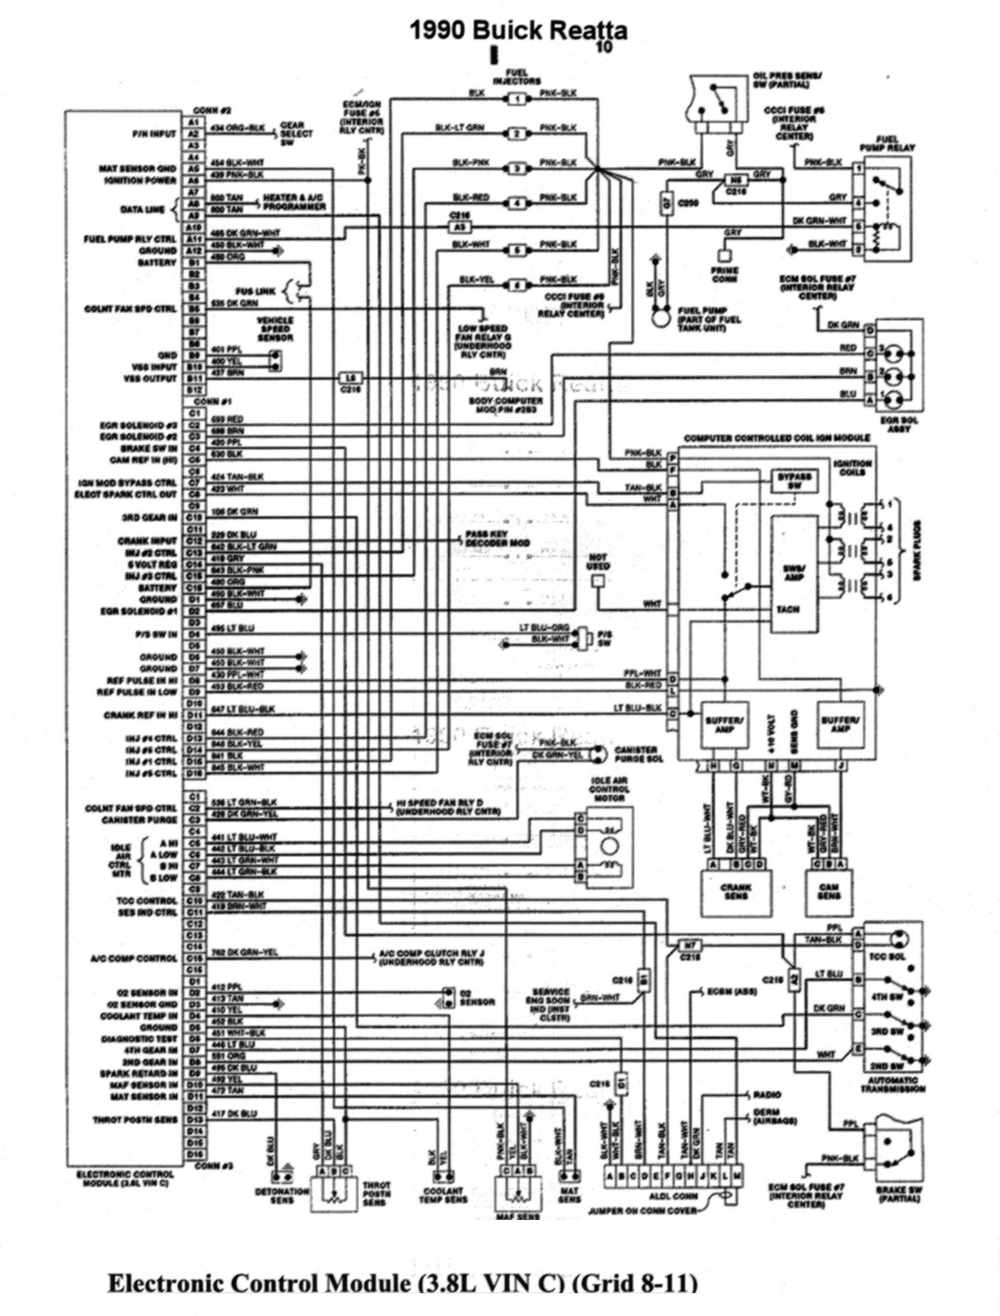 electronic wiring diagram of 1990 buick reatta?t=1508139182 buick car manuals, wiring diagrams pdf & fault codes